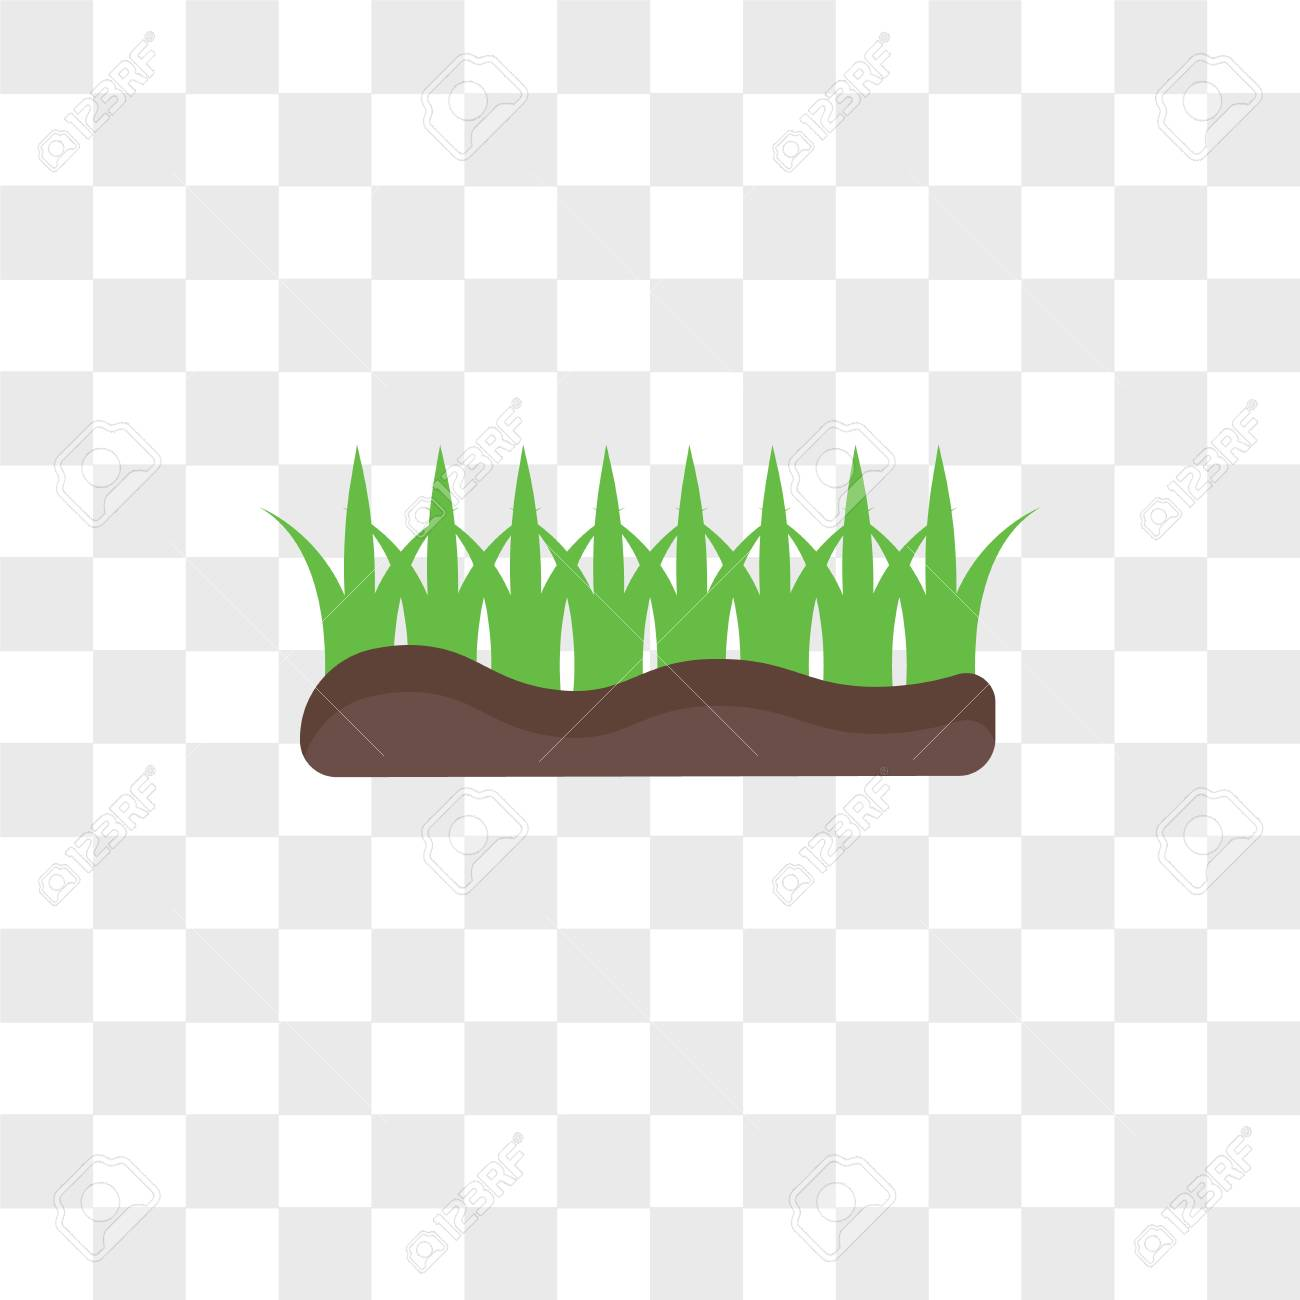 grass vector icon isolated on transparent background grass logo royalty free cliparts vectors and stock illustration image 106755138 grass vector icon isolated on transparent background grass logo